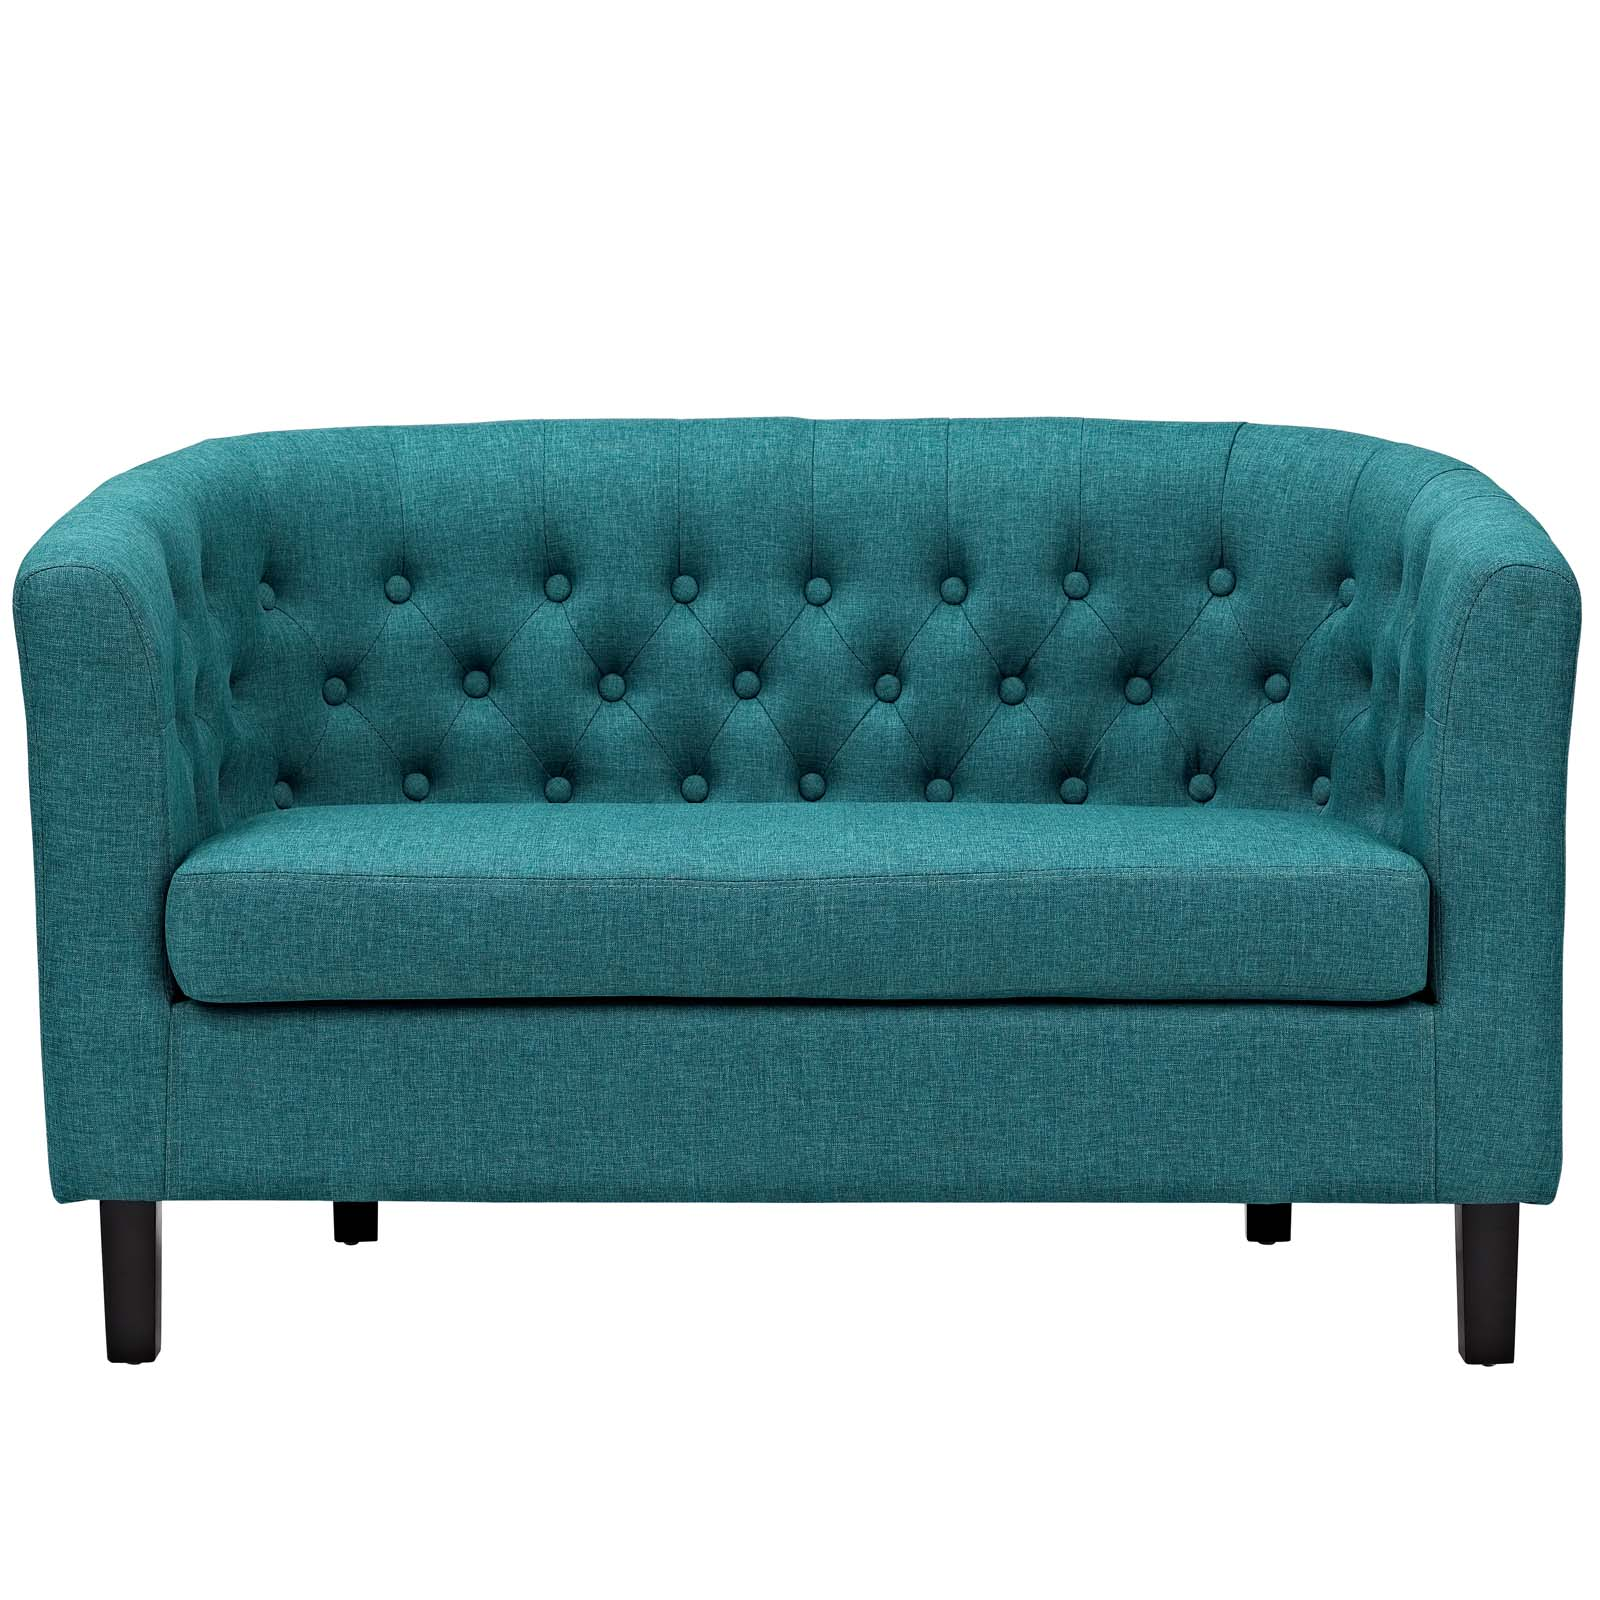 Modway Prospect Upholstered Fabric Loveseat, Multiple Colors